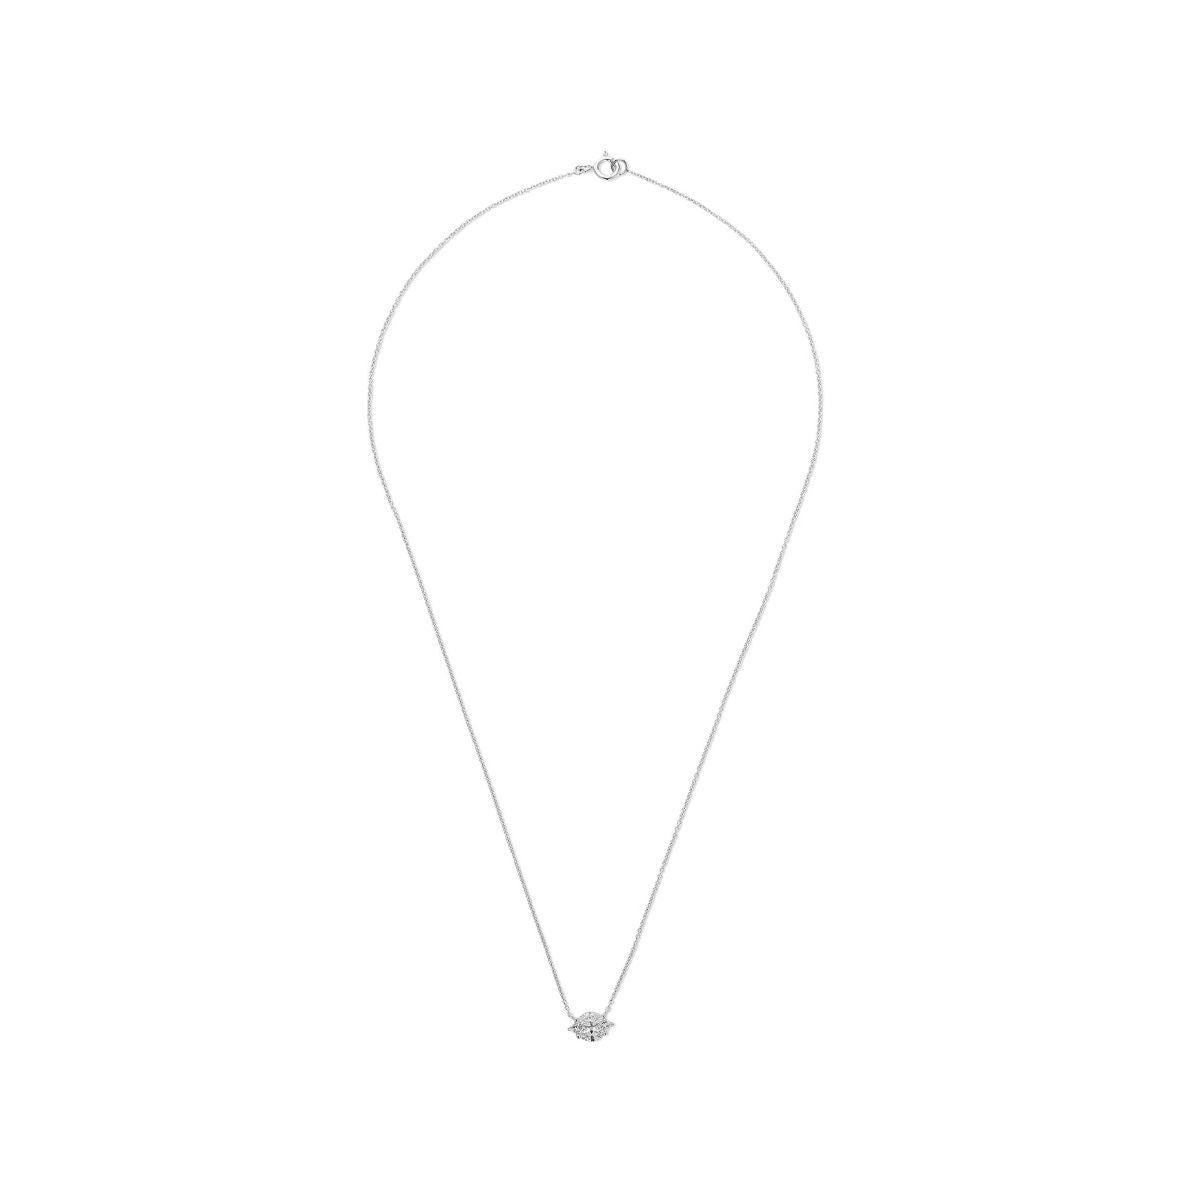 mye-marquise-illusion-diamond-necklace-in-18k-white-gold